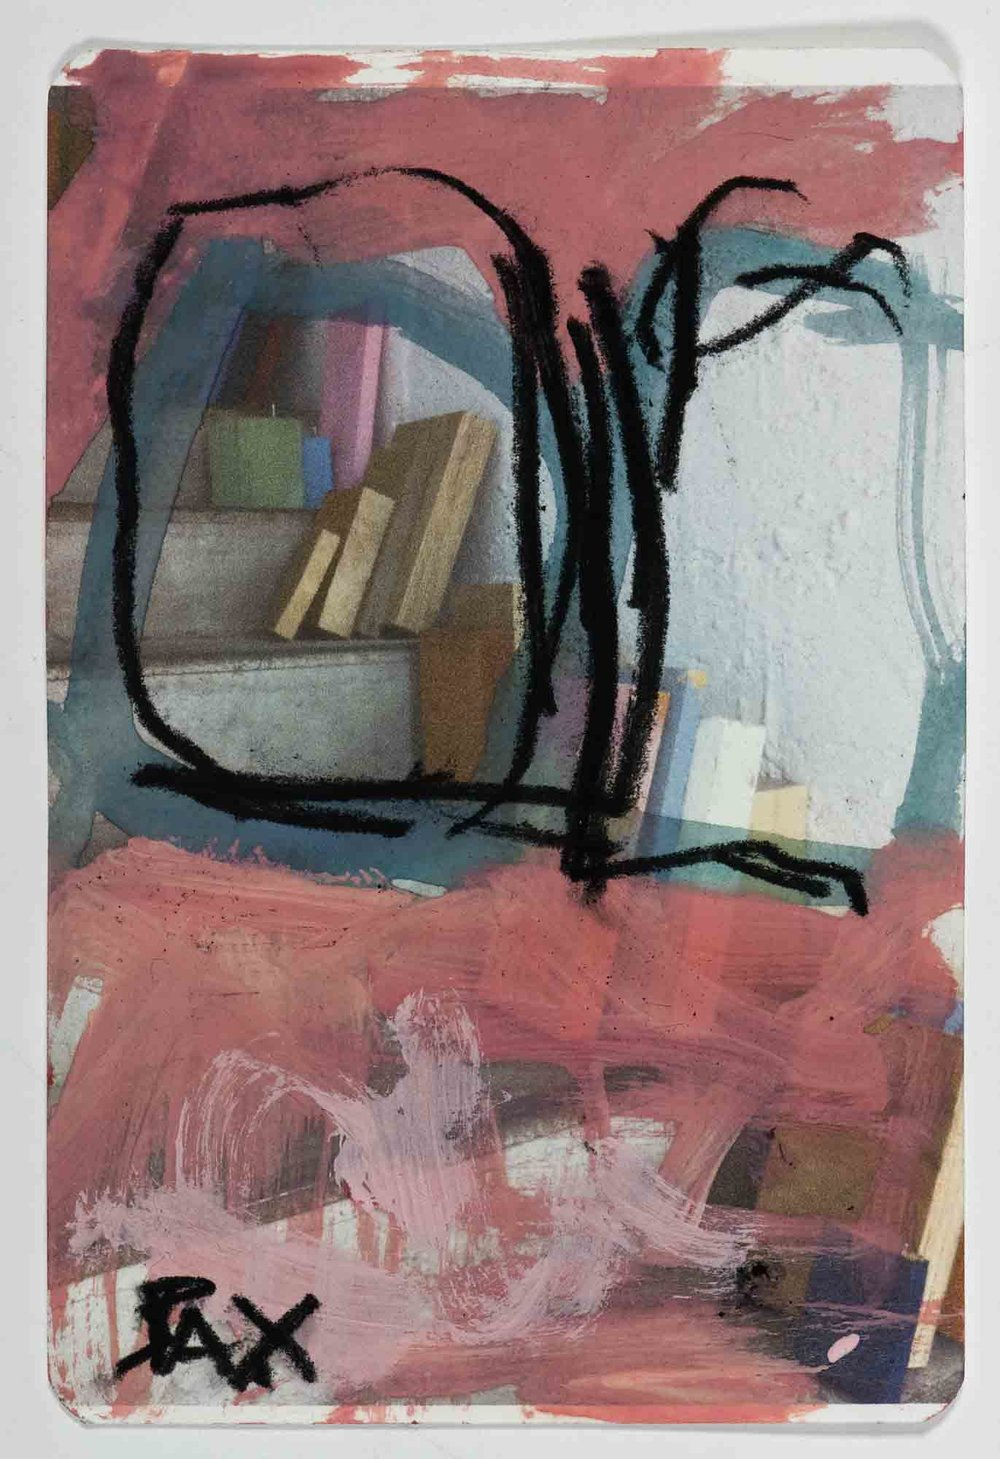 Matthew Bax,  Sample Chapter 6,  2012, acrylic, charcoal, pencil, wax crayon on paper, 15 x 10cm